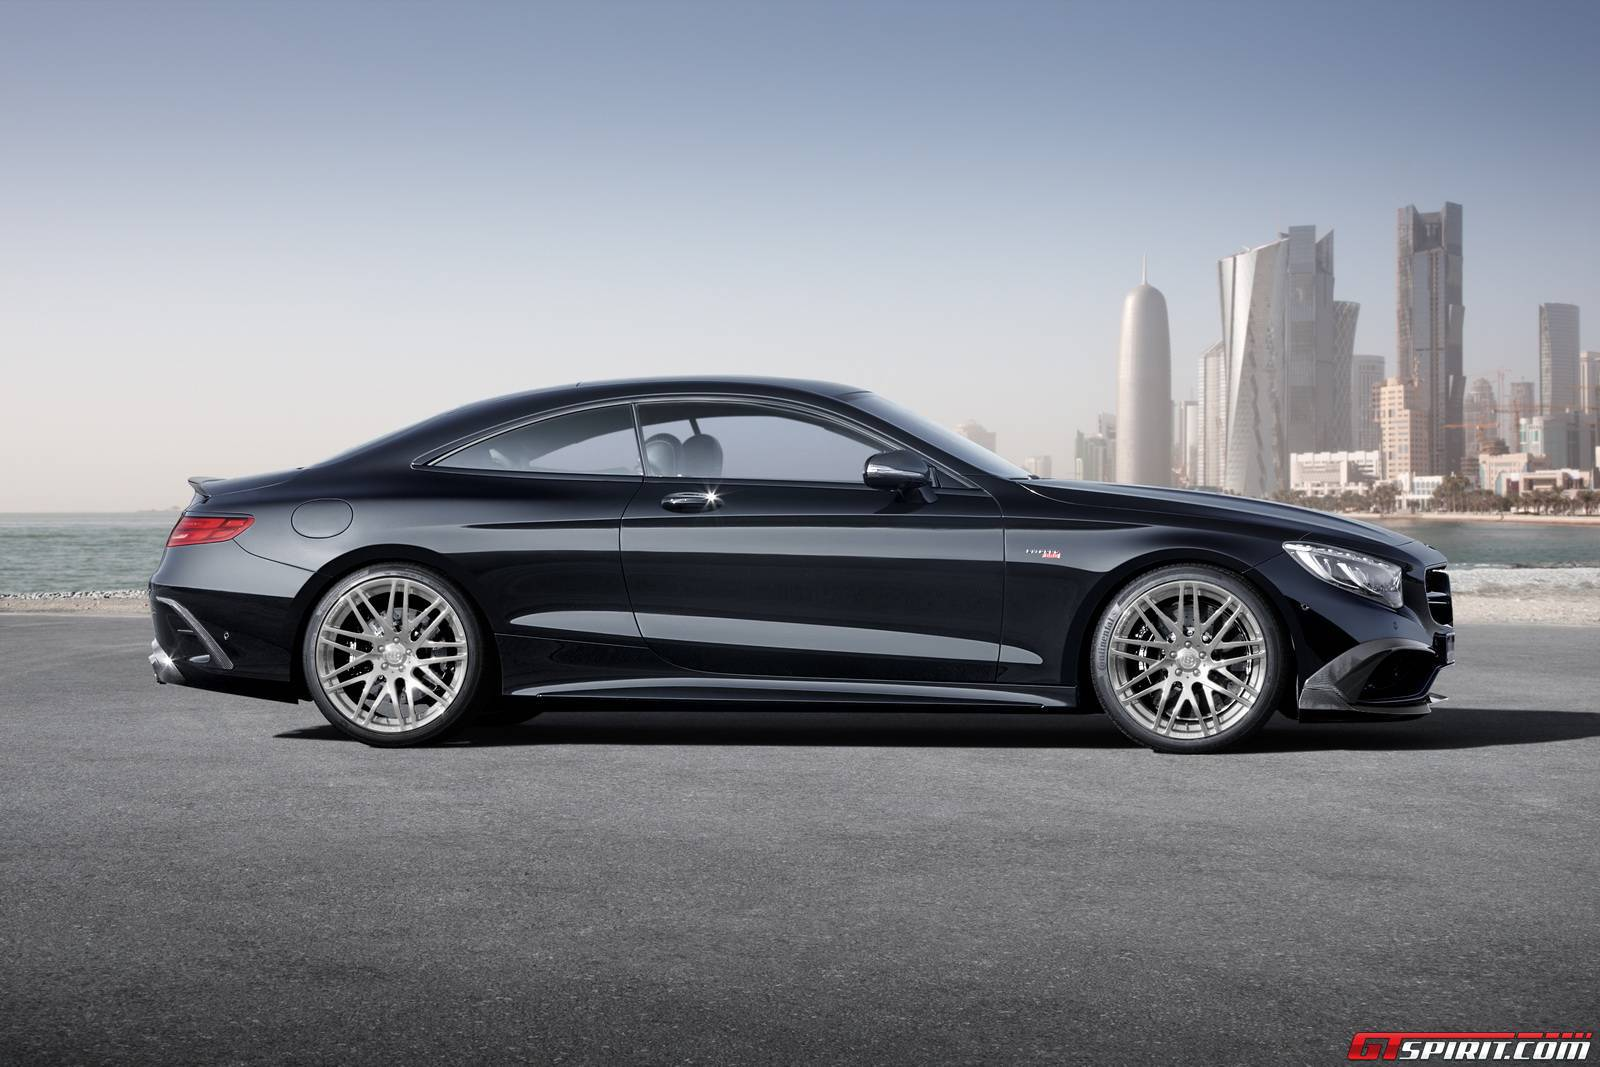 Official brabus 850 mercedes benz s63 amg coupe gtspirit for Mercedes benz brabus amg